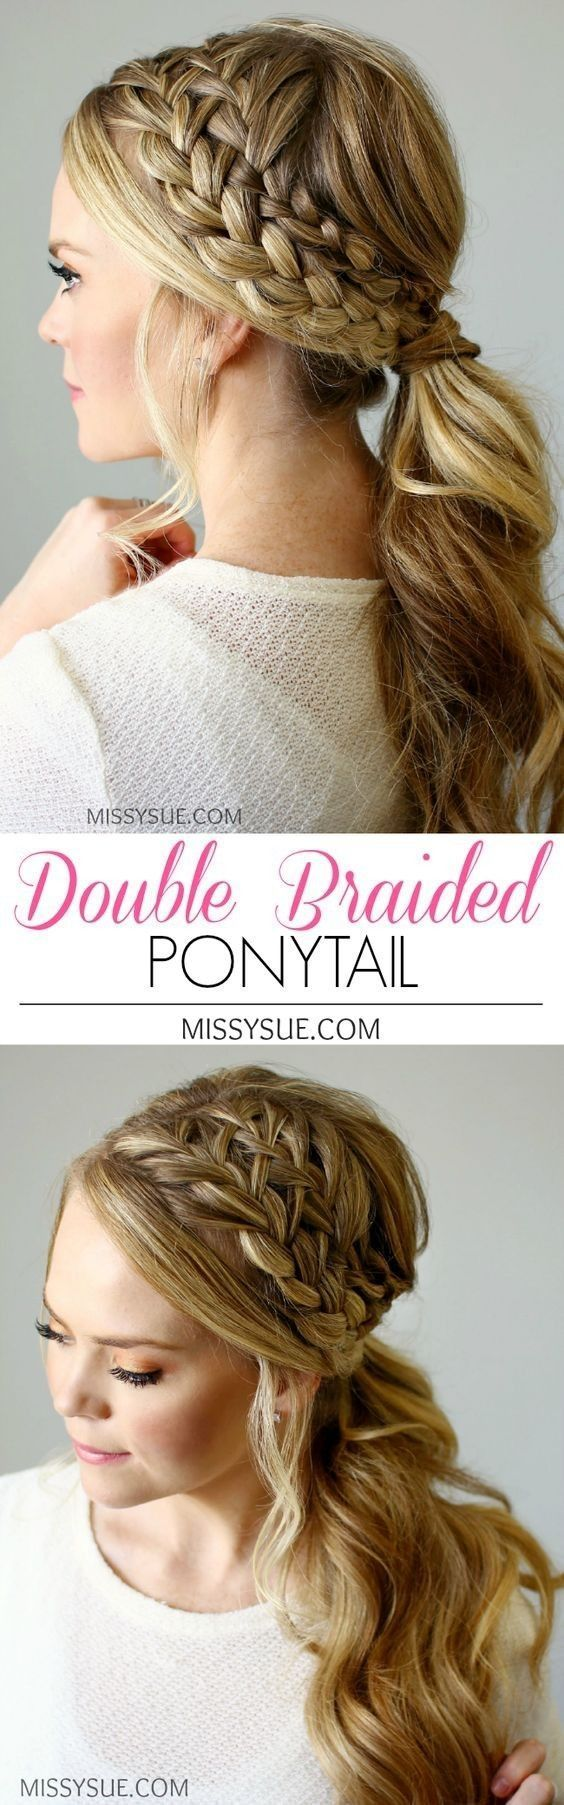 (19) 1000  ideas about Hairstyles on Pinterest - Looking for affordable hair extensions to refresh your hair look instantly? http://www.hairextensionsale.com/?source=autopin-pdnew